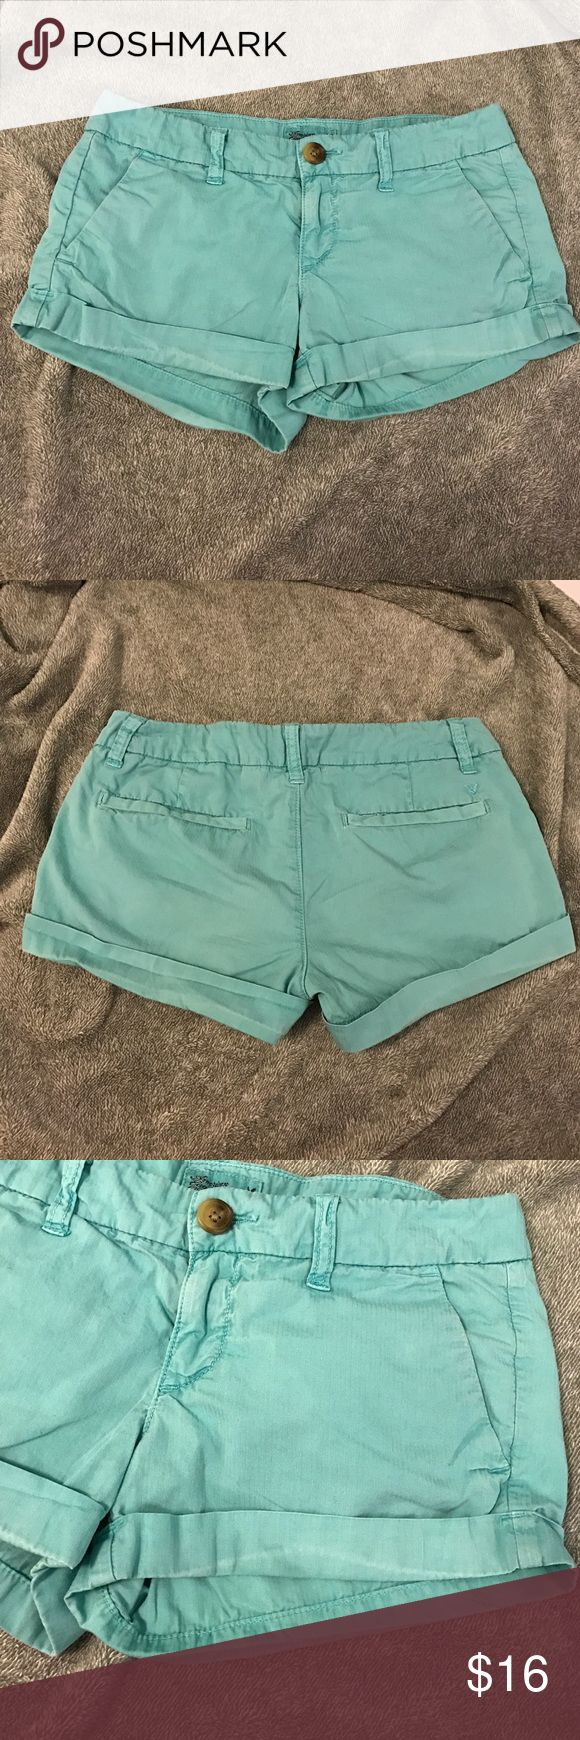 Selling this American eagle 00 turquoise shorts on Poshmark! My username is: wysock10. #shopmycloset #poshmark #fashion #shopping #style #forsale #American Eagle Outfitters #Pants